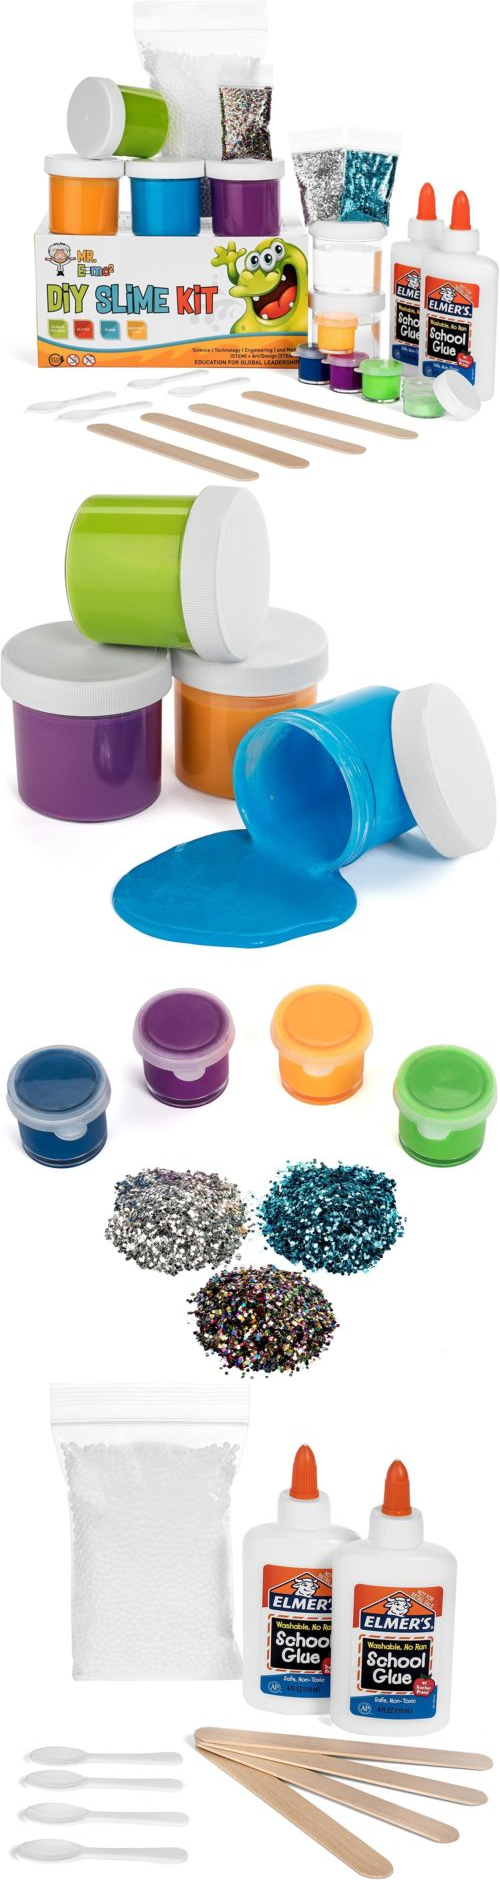 Other kids crafts 28145 homemade slime kit how to make slime other kids crafts 28145 homemade slime kit how to make slime putty ccuart Image collections